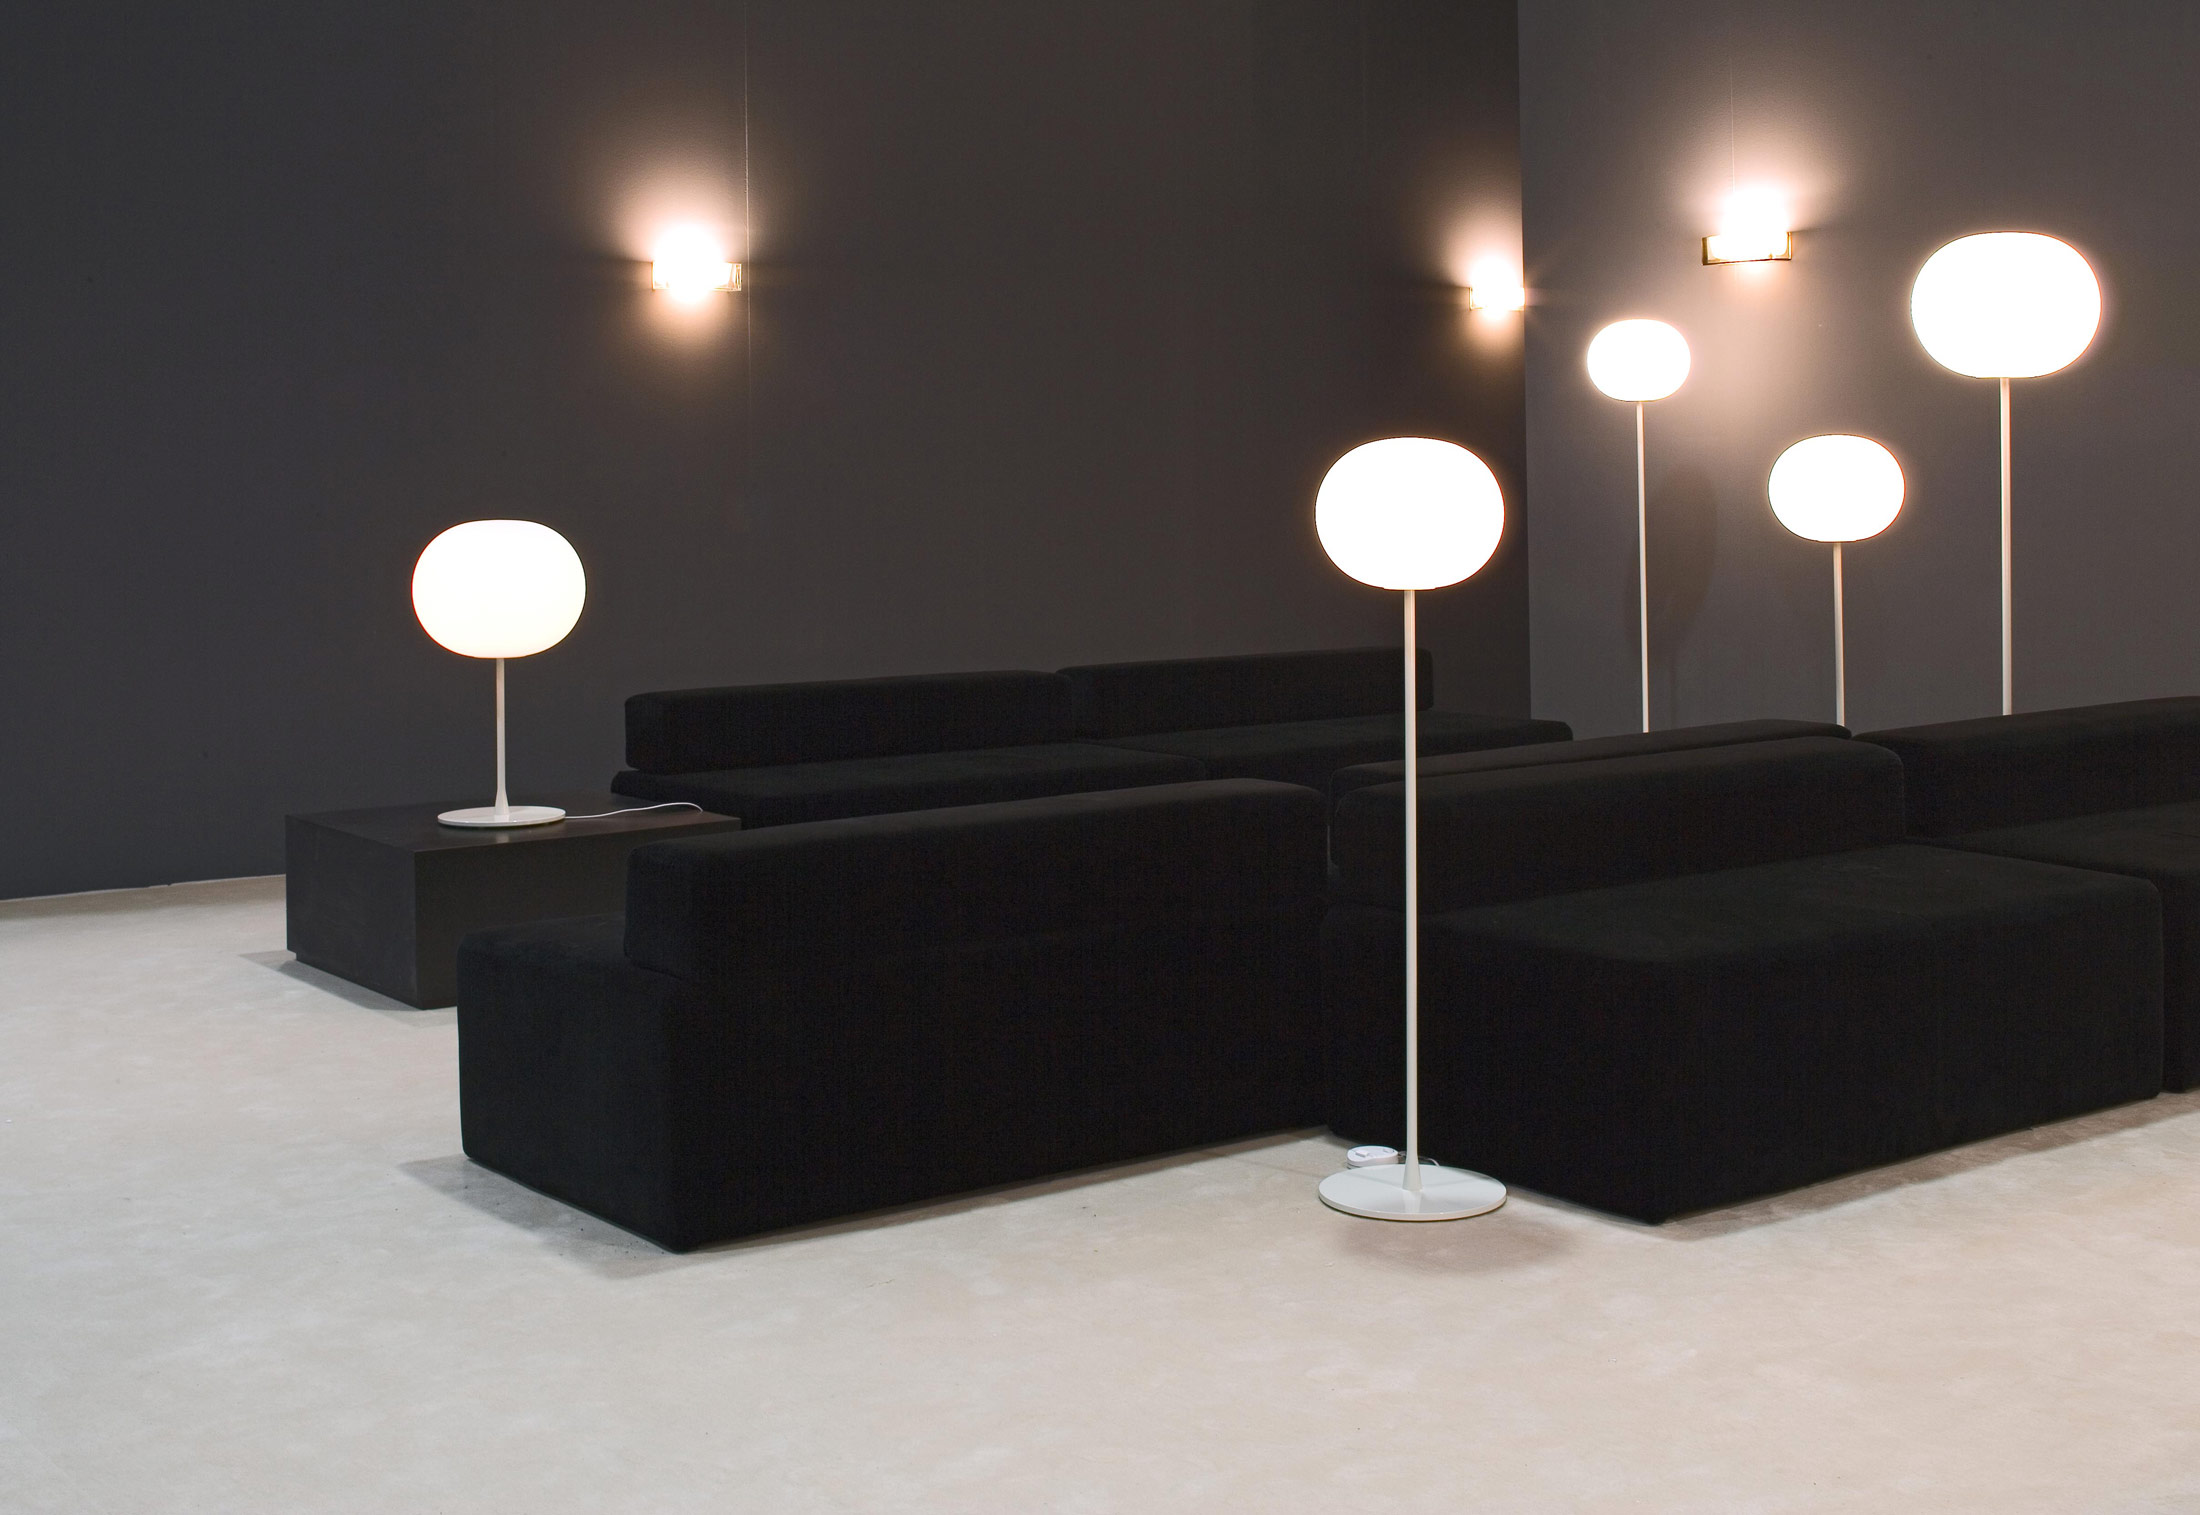 Glo ball f3 floor lamp by flos stylepark glo ball f3 floor lamp mozeypictures Gallery